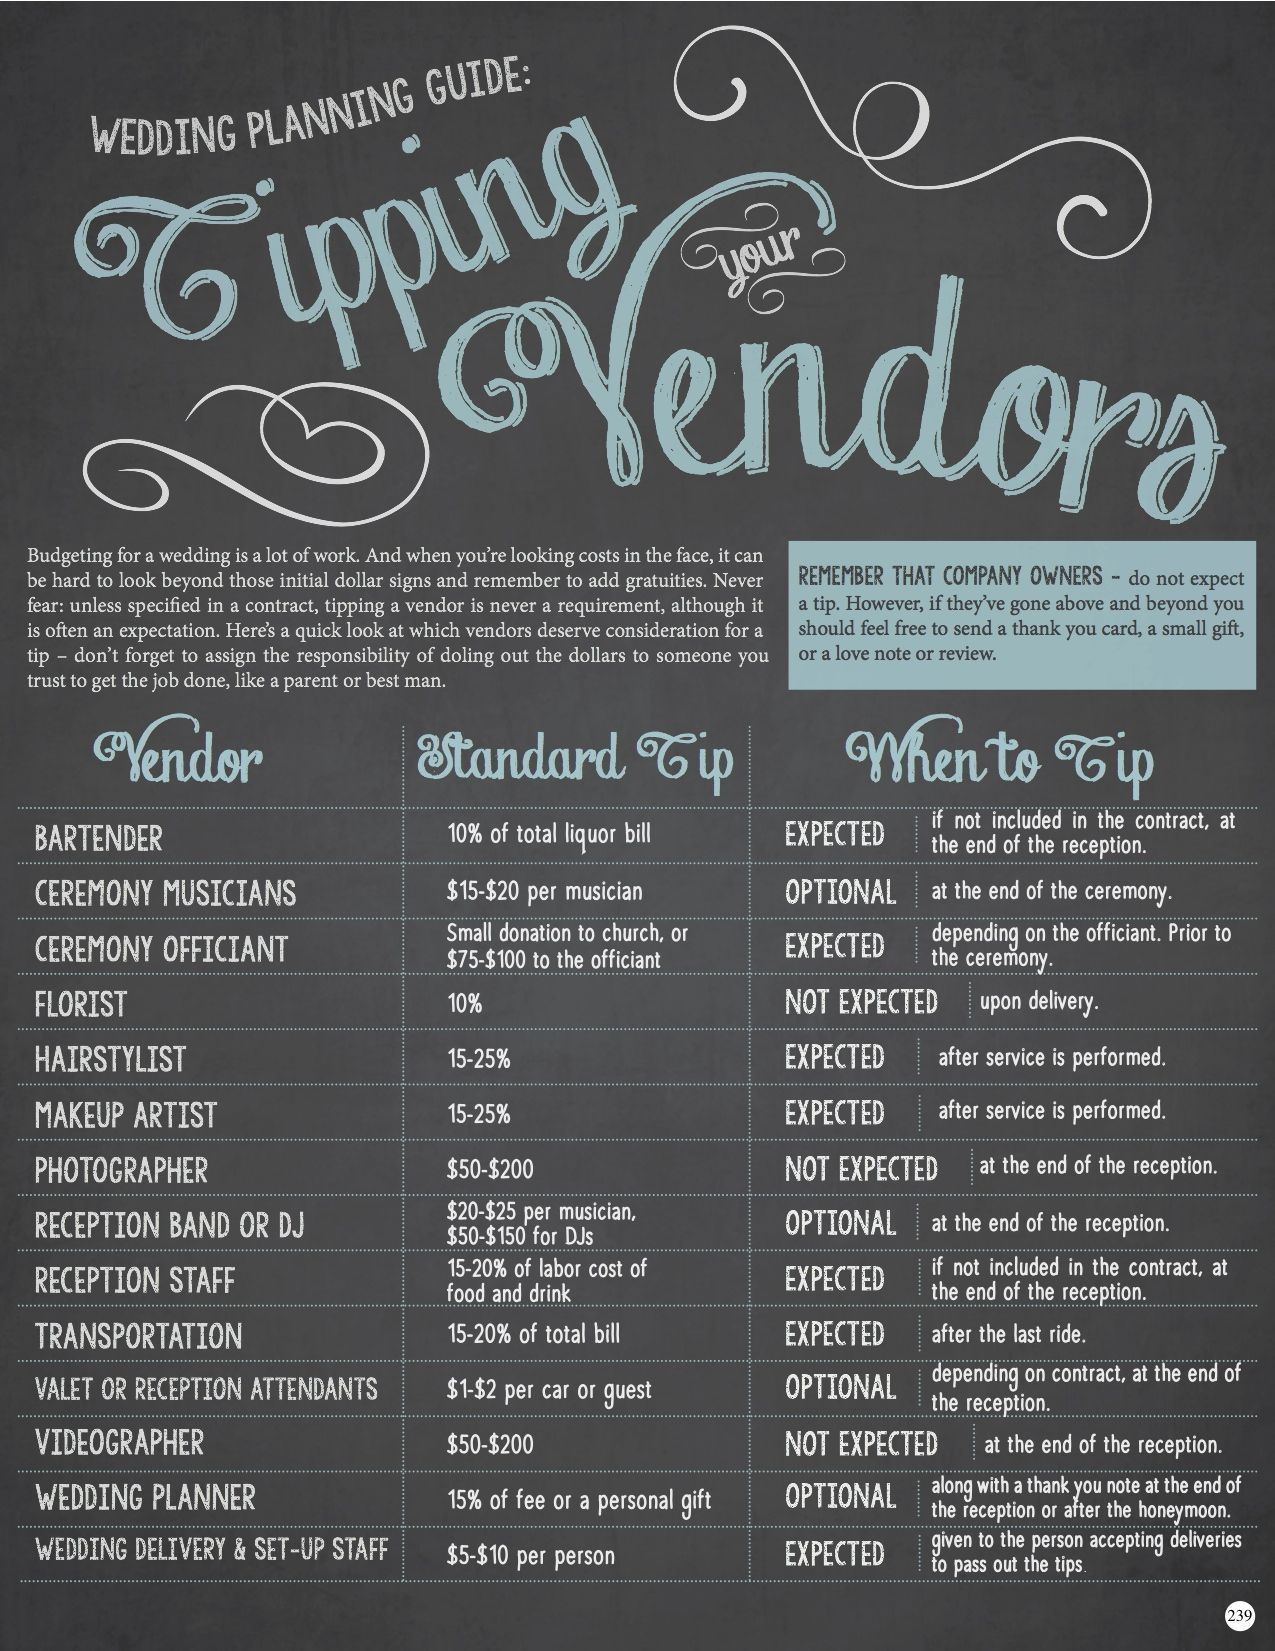 Tipping Guide For A Wedding